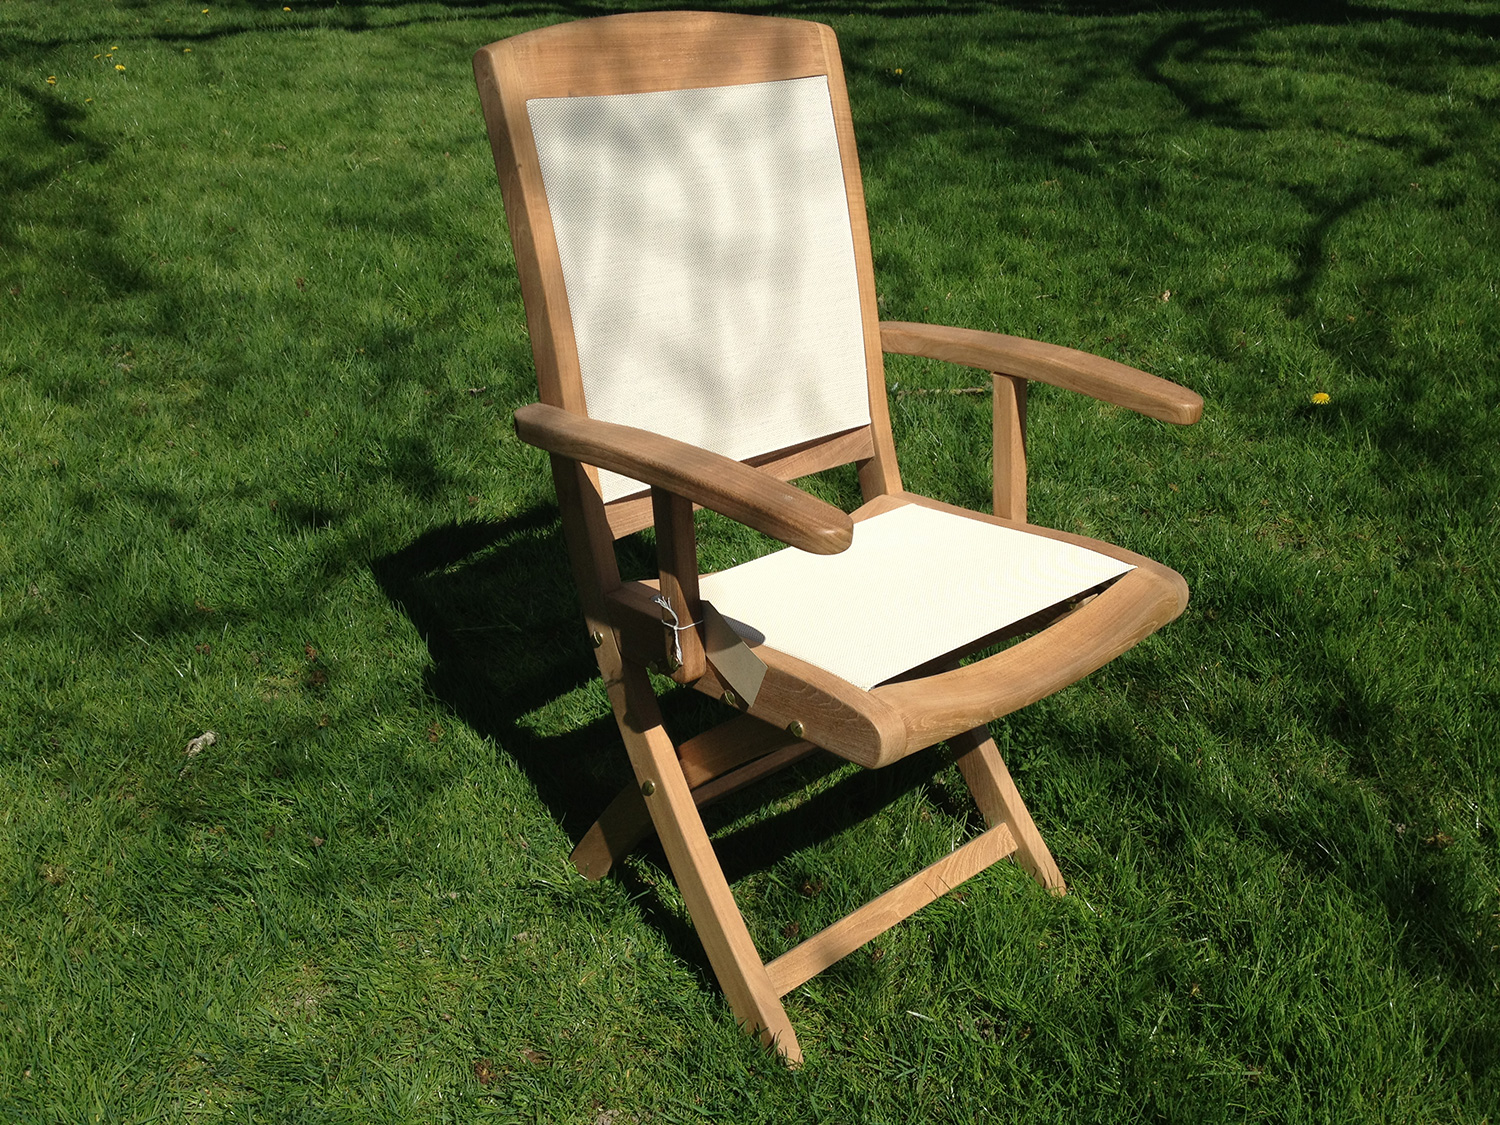 high quality directors chairs black modern chair chic teak supplies and tables to harris gardens in